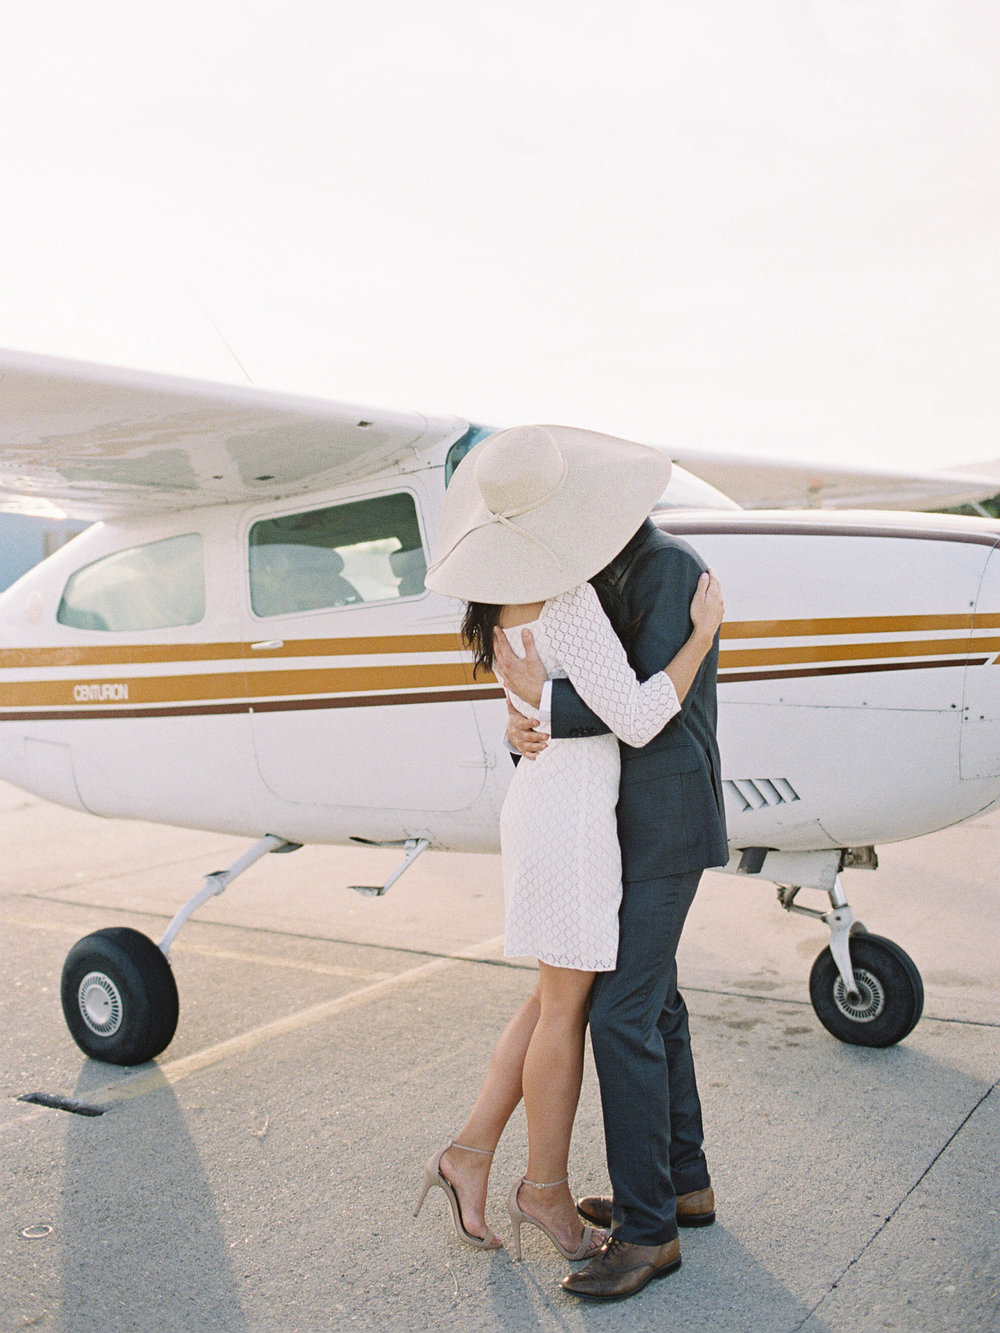 airport-engagement-shoot-19.jpg